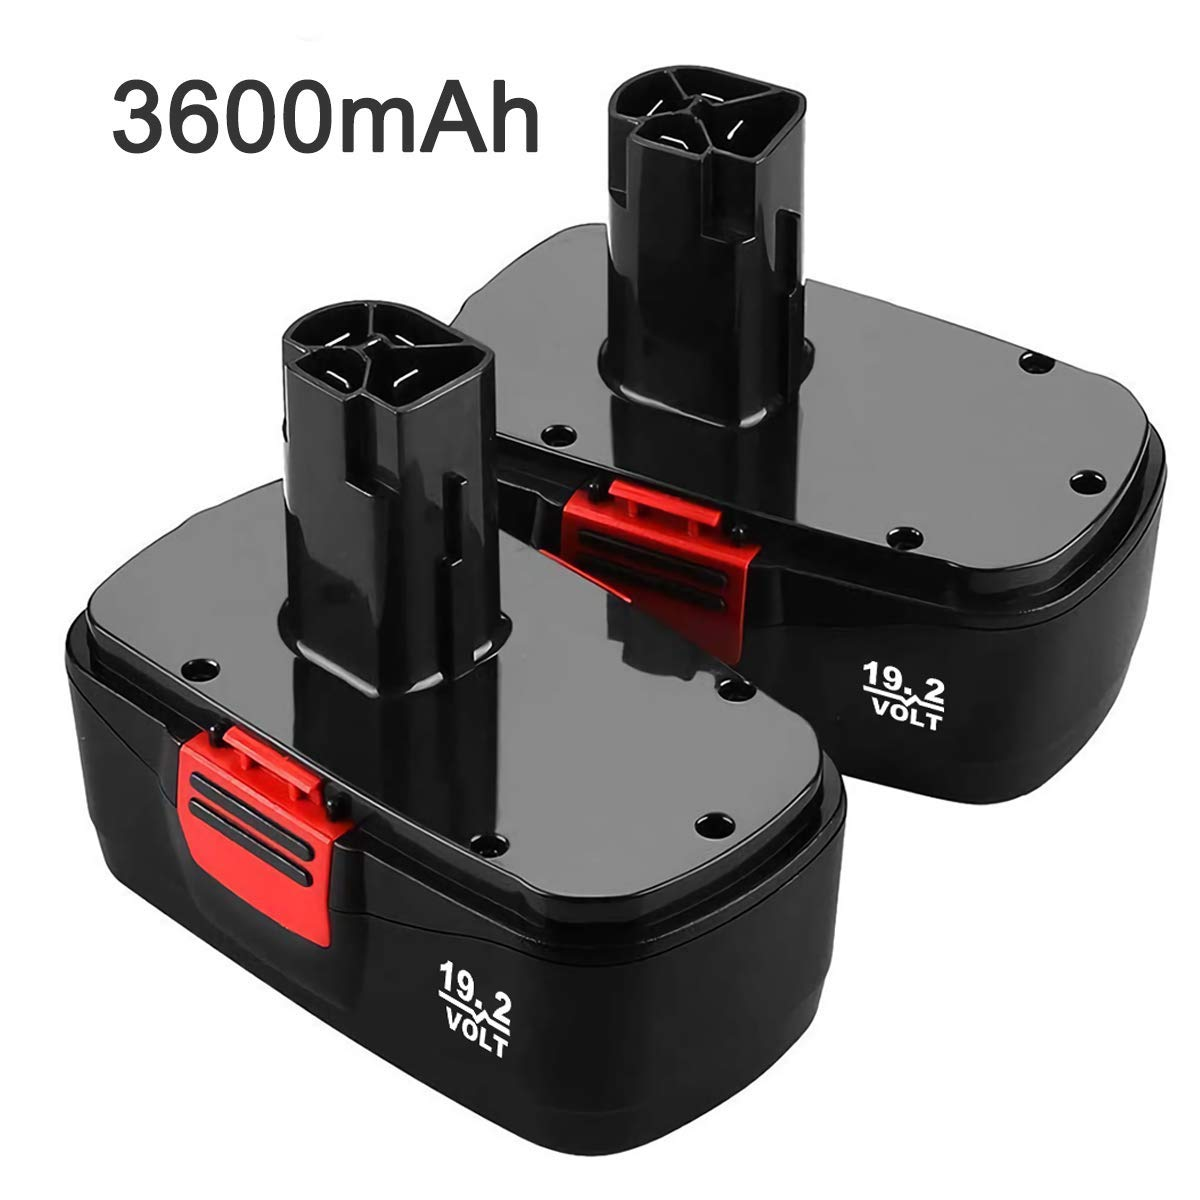 2 Pack 3600mAh C3 Ni-Mh Battery Replacement for Craftsman 19.2 Volt Battery DieHard 130279005 315.113753 315.115410 315.11485 1323903 120235021 130235021 11375 11376 19.2V Cordless Drill Batteries